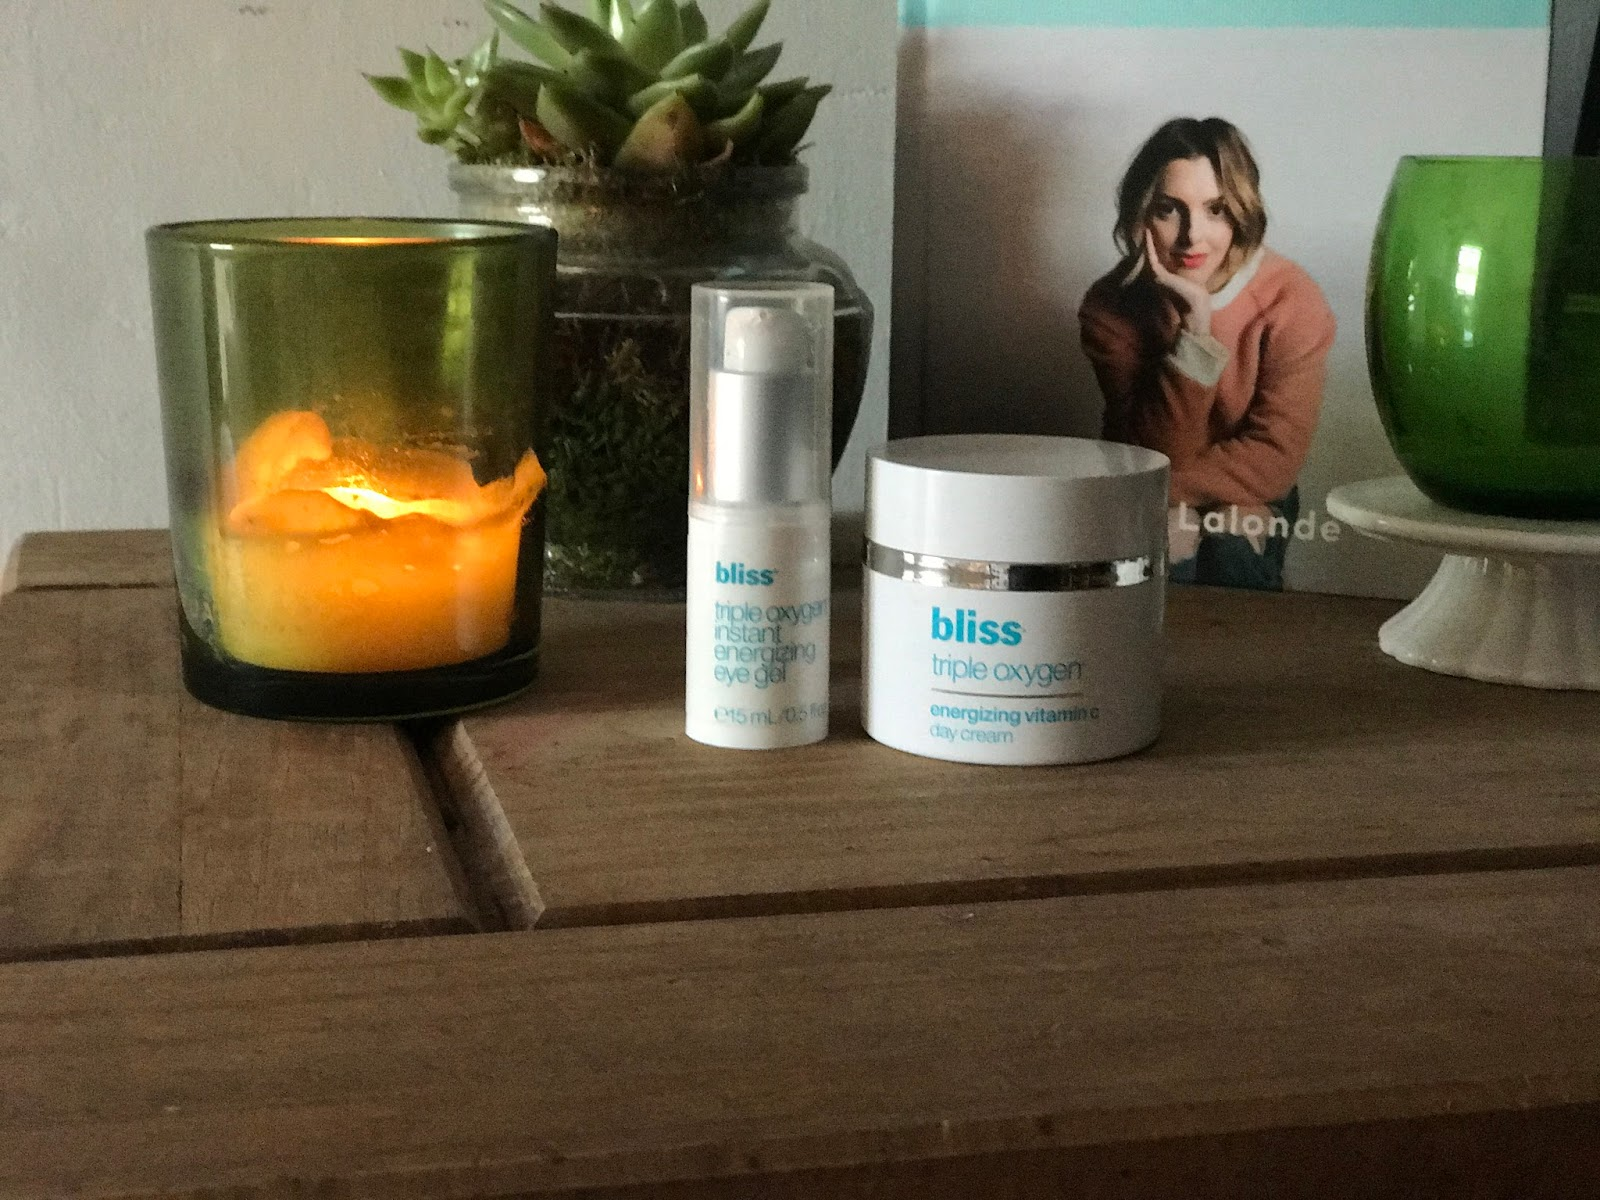 Bliss Triple Oxygen Day Cream Review